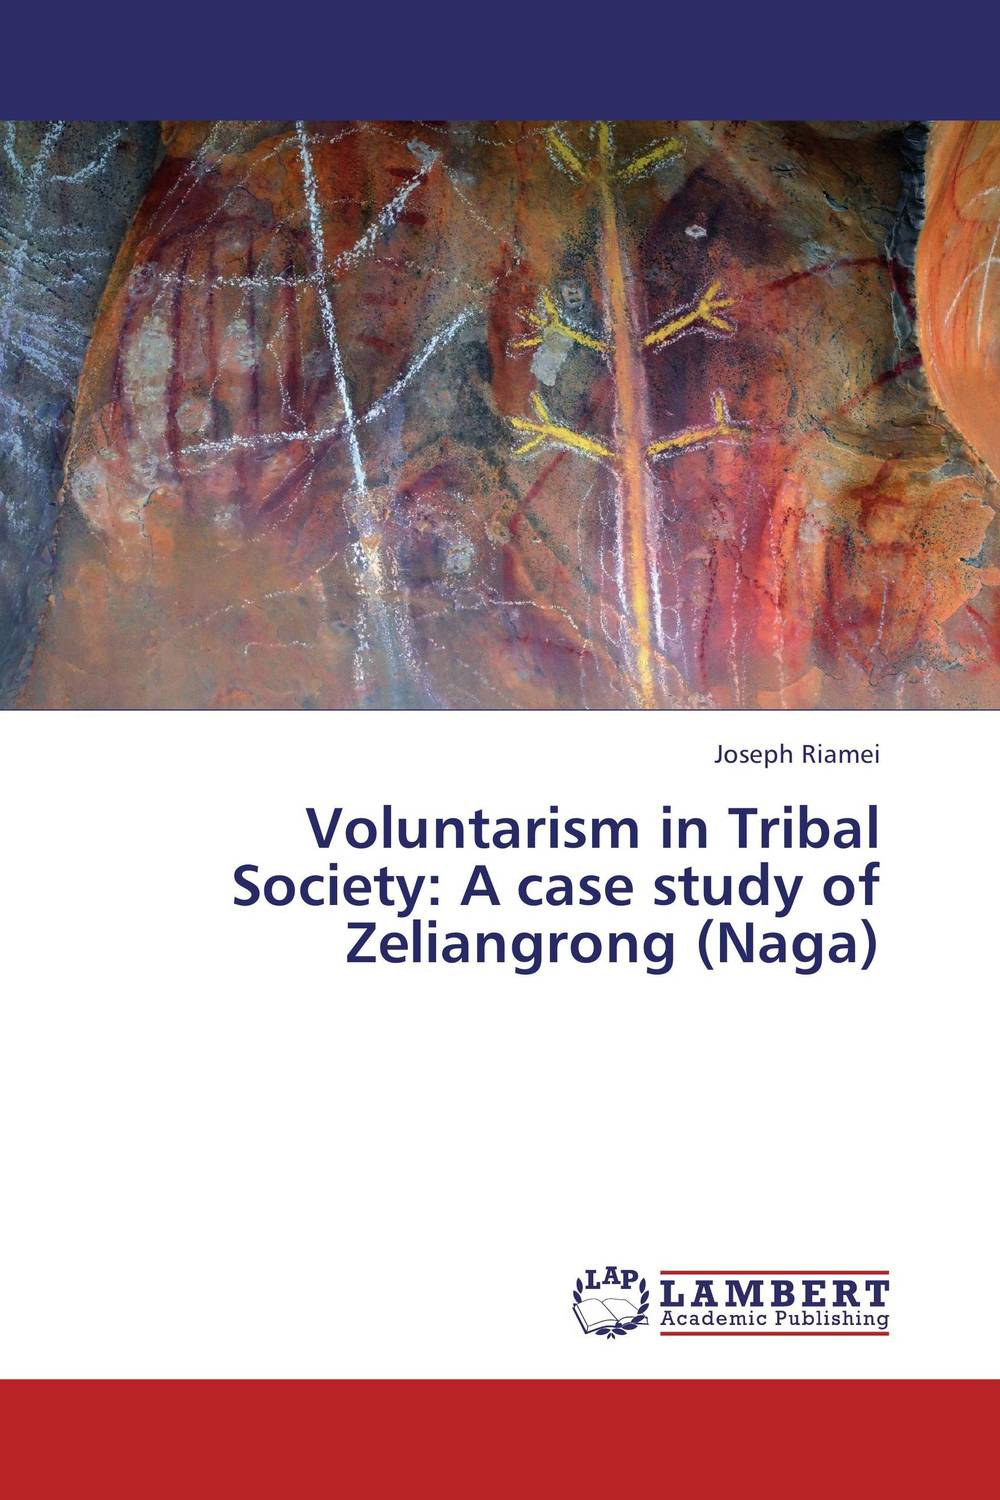 Voluntarism in Tribal Society: A case study of Zeliangrong (Naga) voluntary associations in tsarist russia – science patriotism and civil society